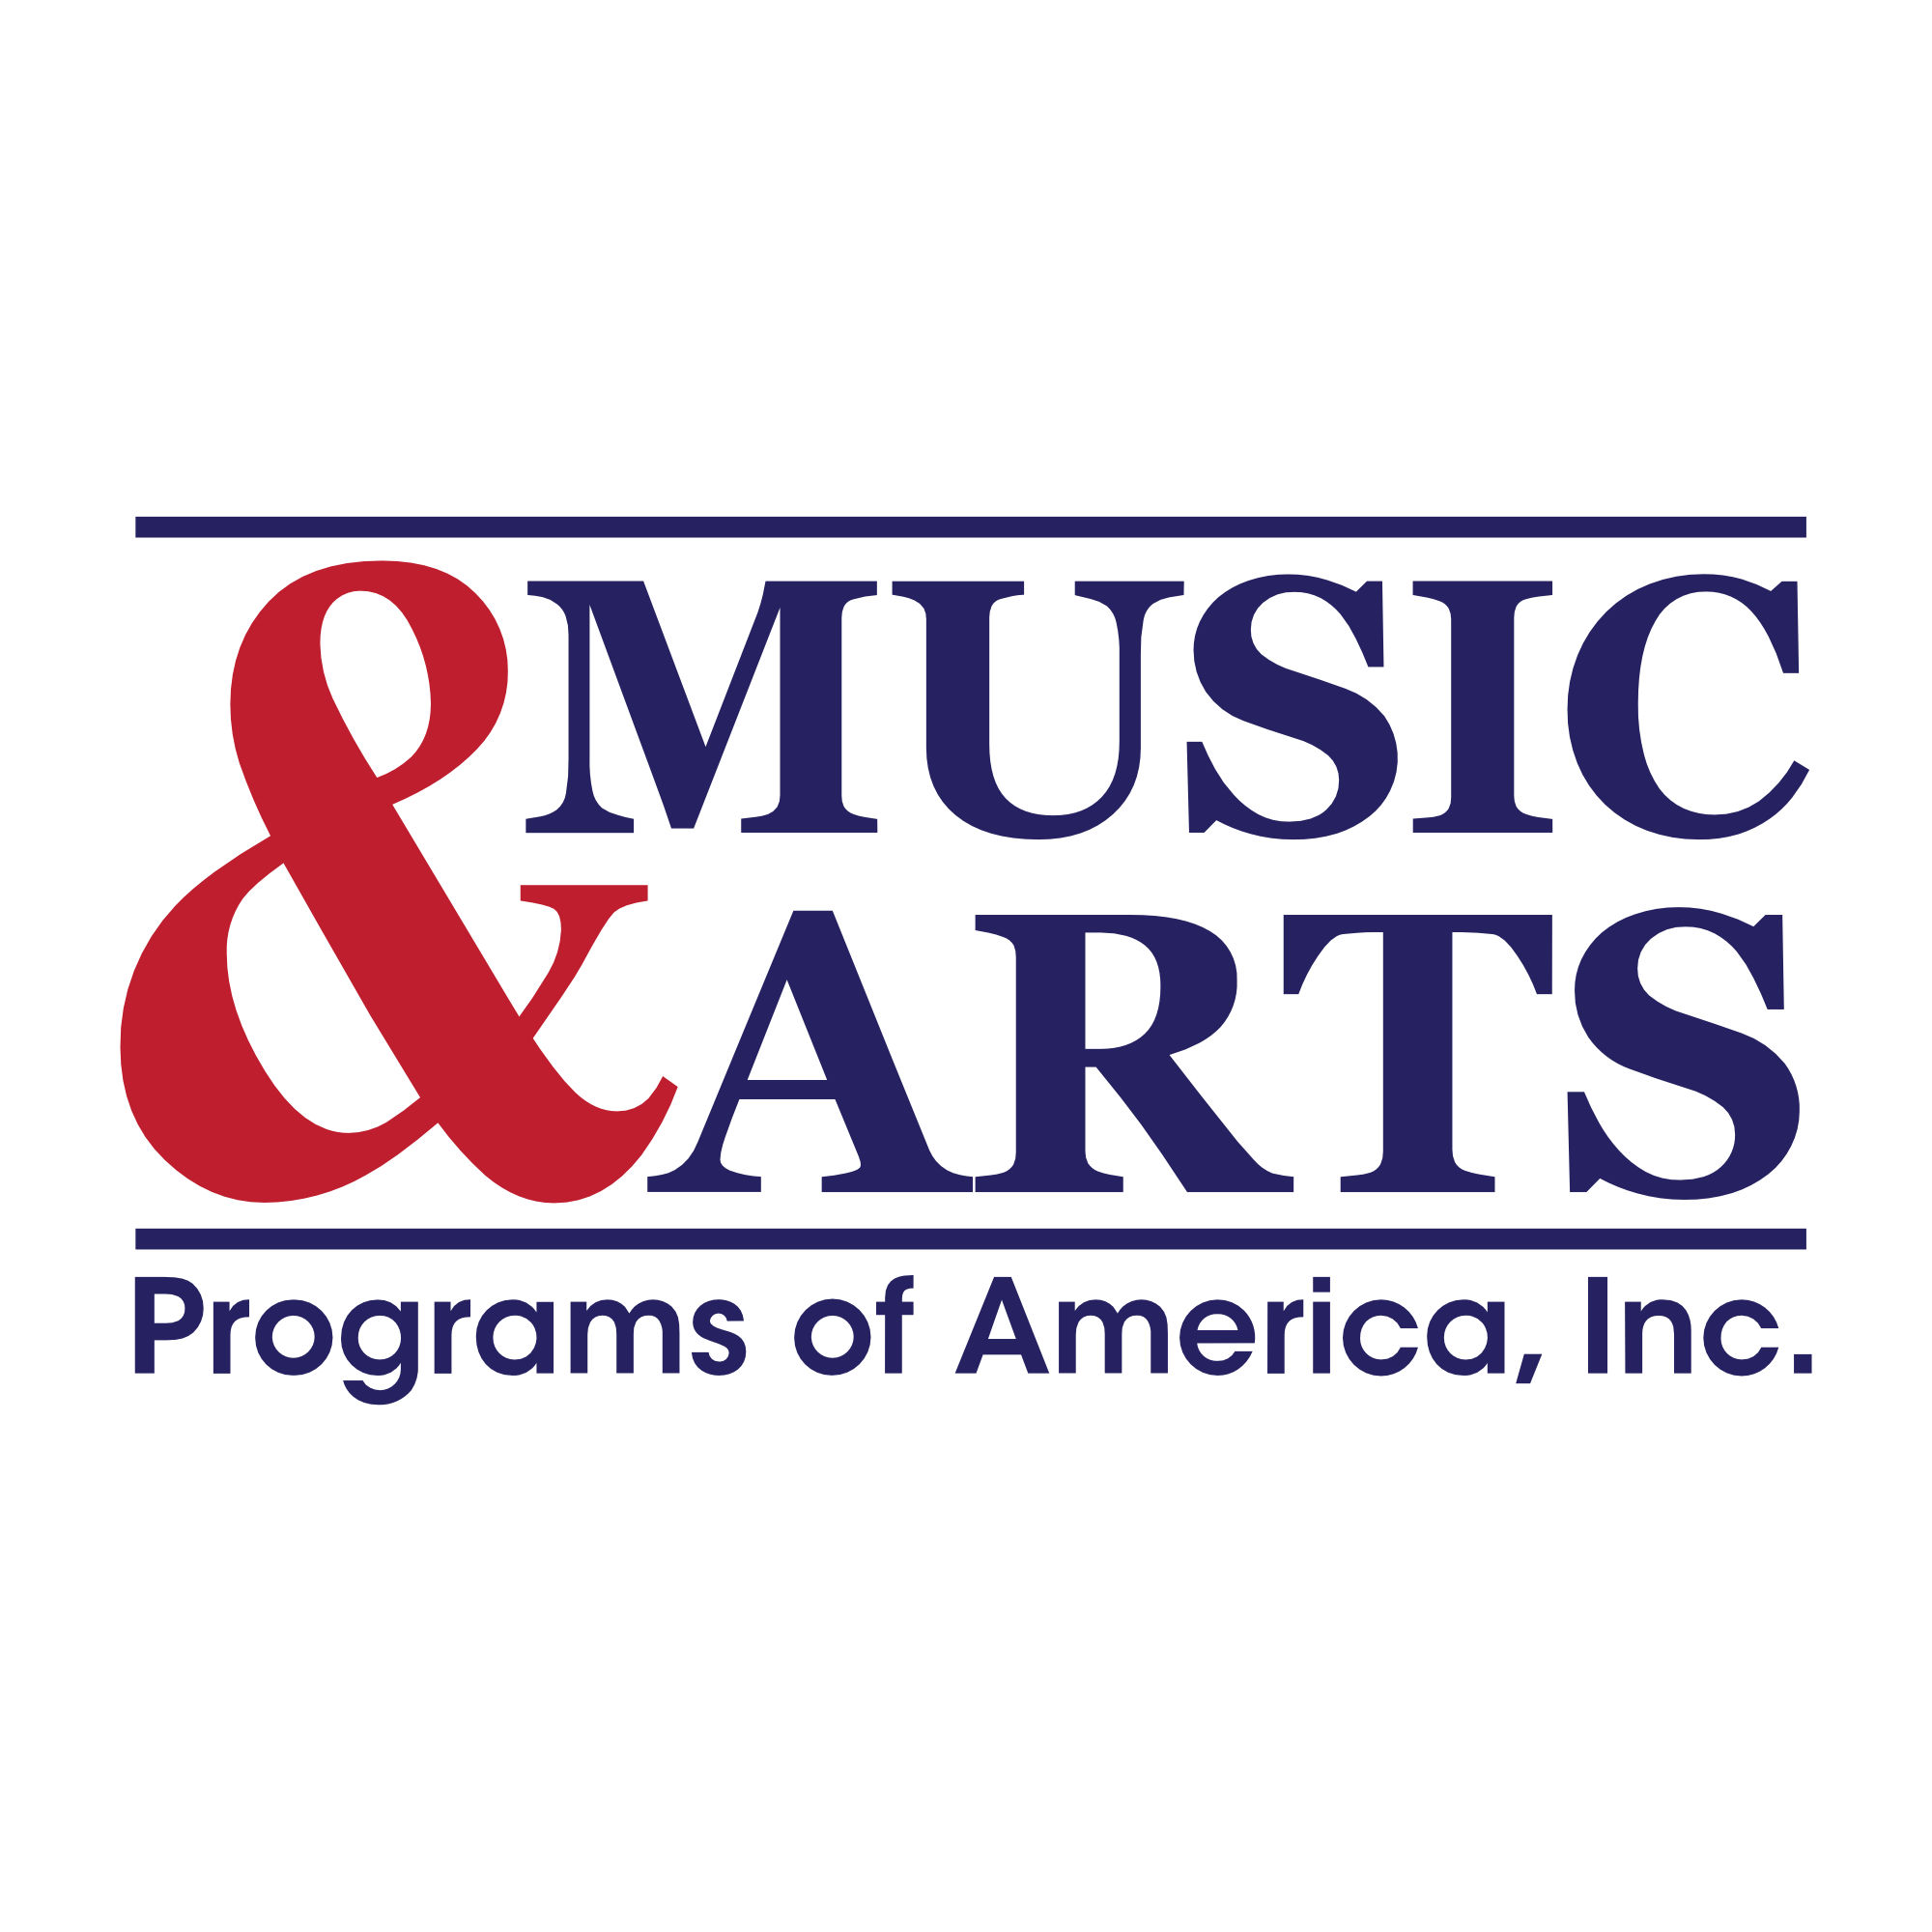 Music and Arts Programs of America